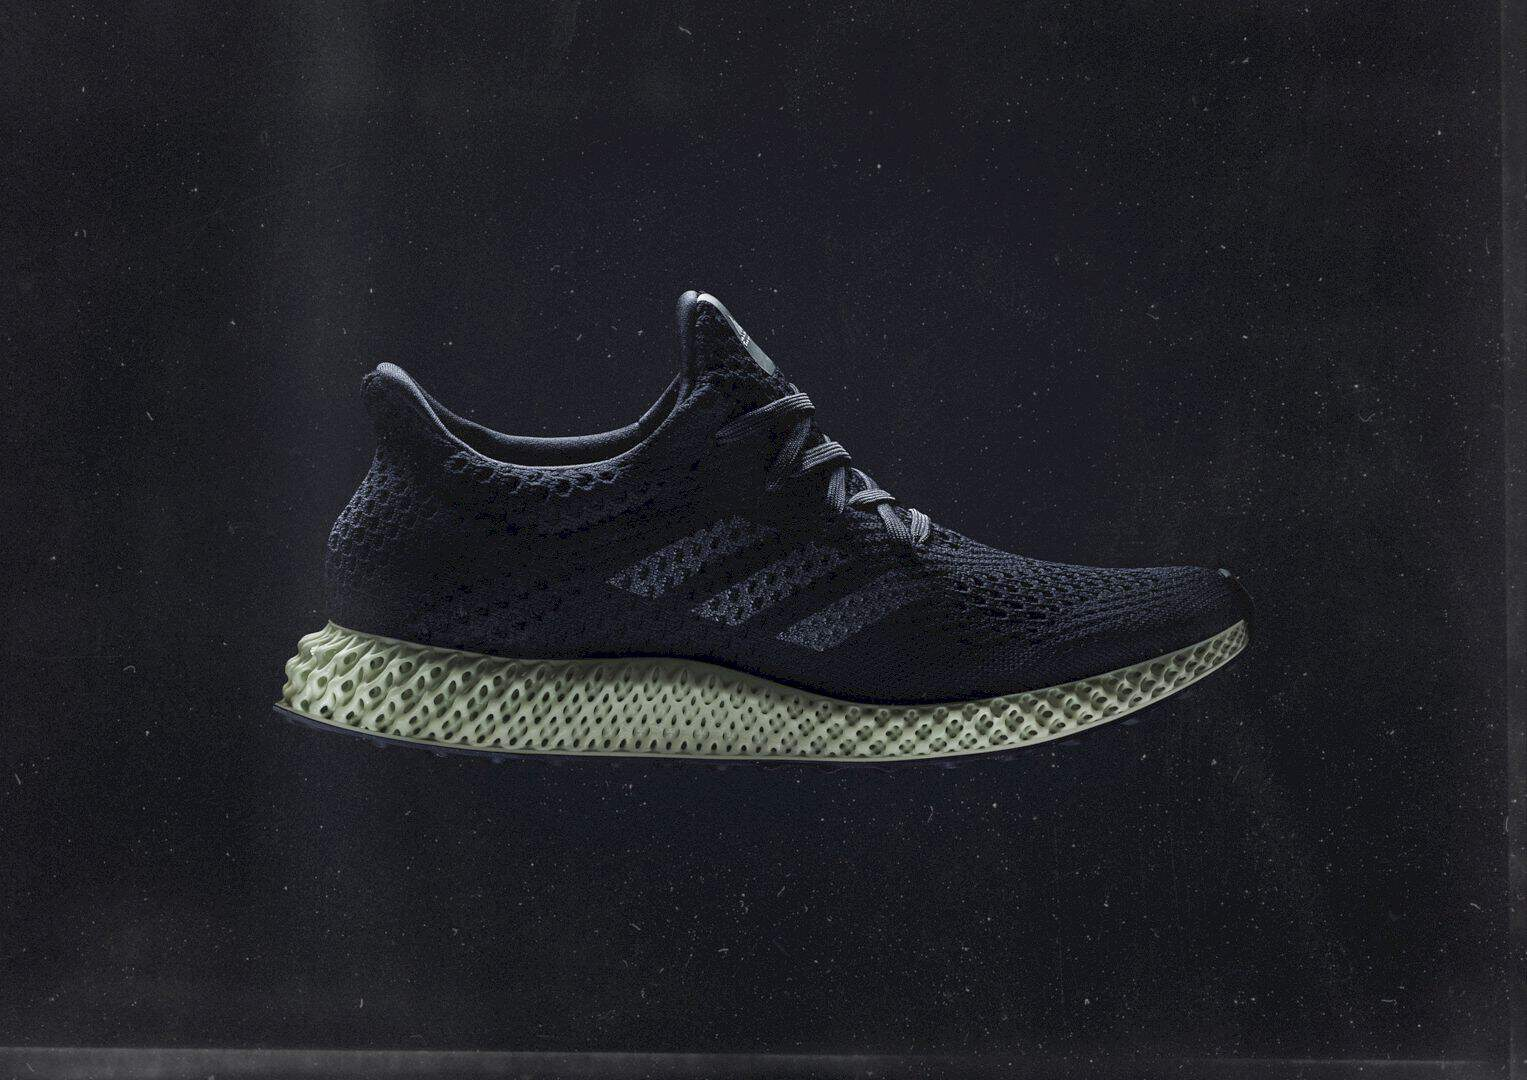 ADIDAS FUTURECRAFT 4D 7